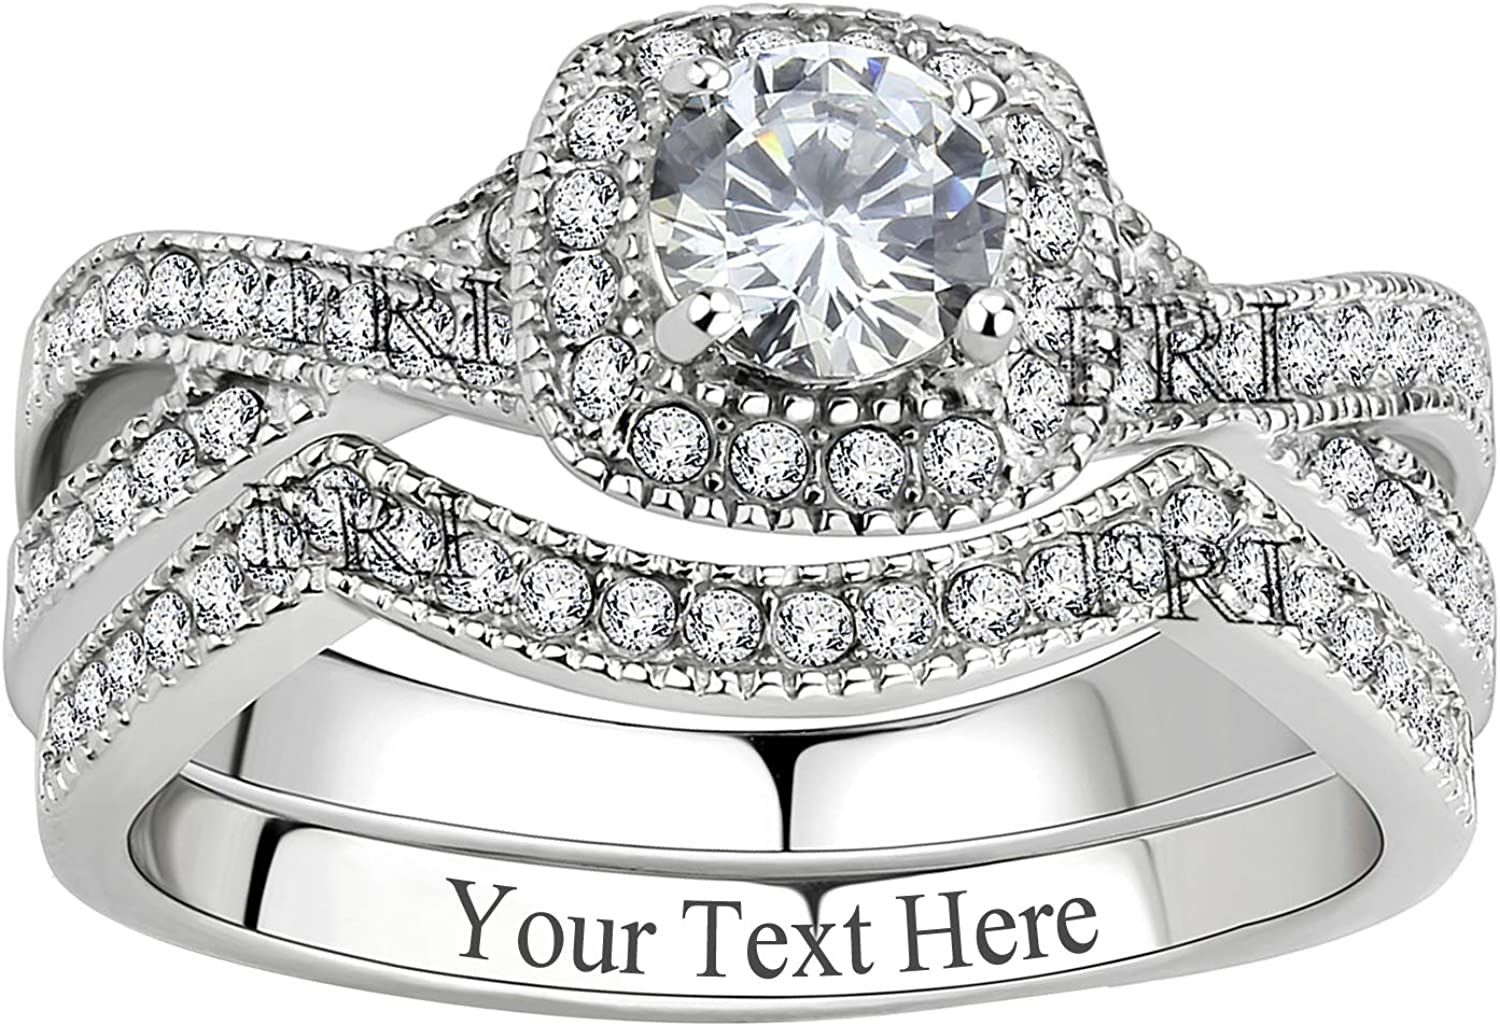 New York Mall Credence FlameReflection Stainless Steel Rings Women Infinity for Wedding